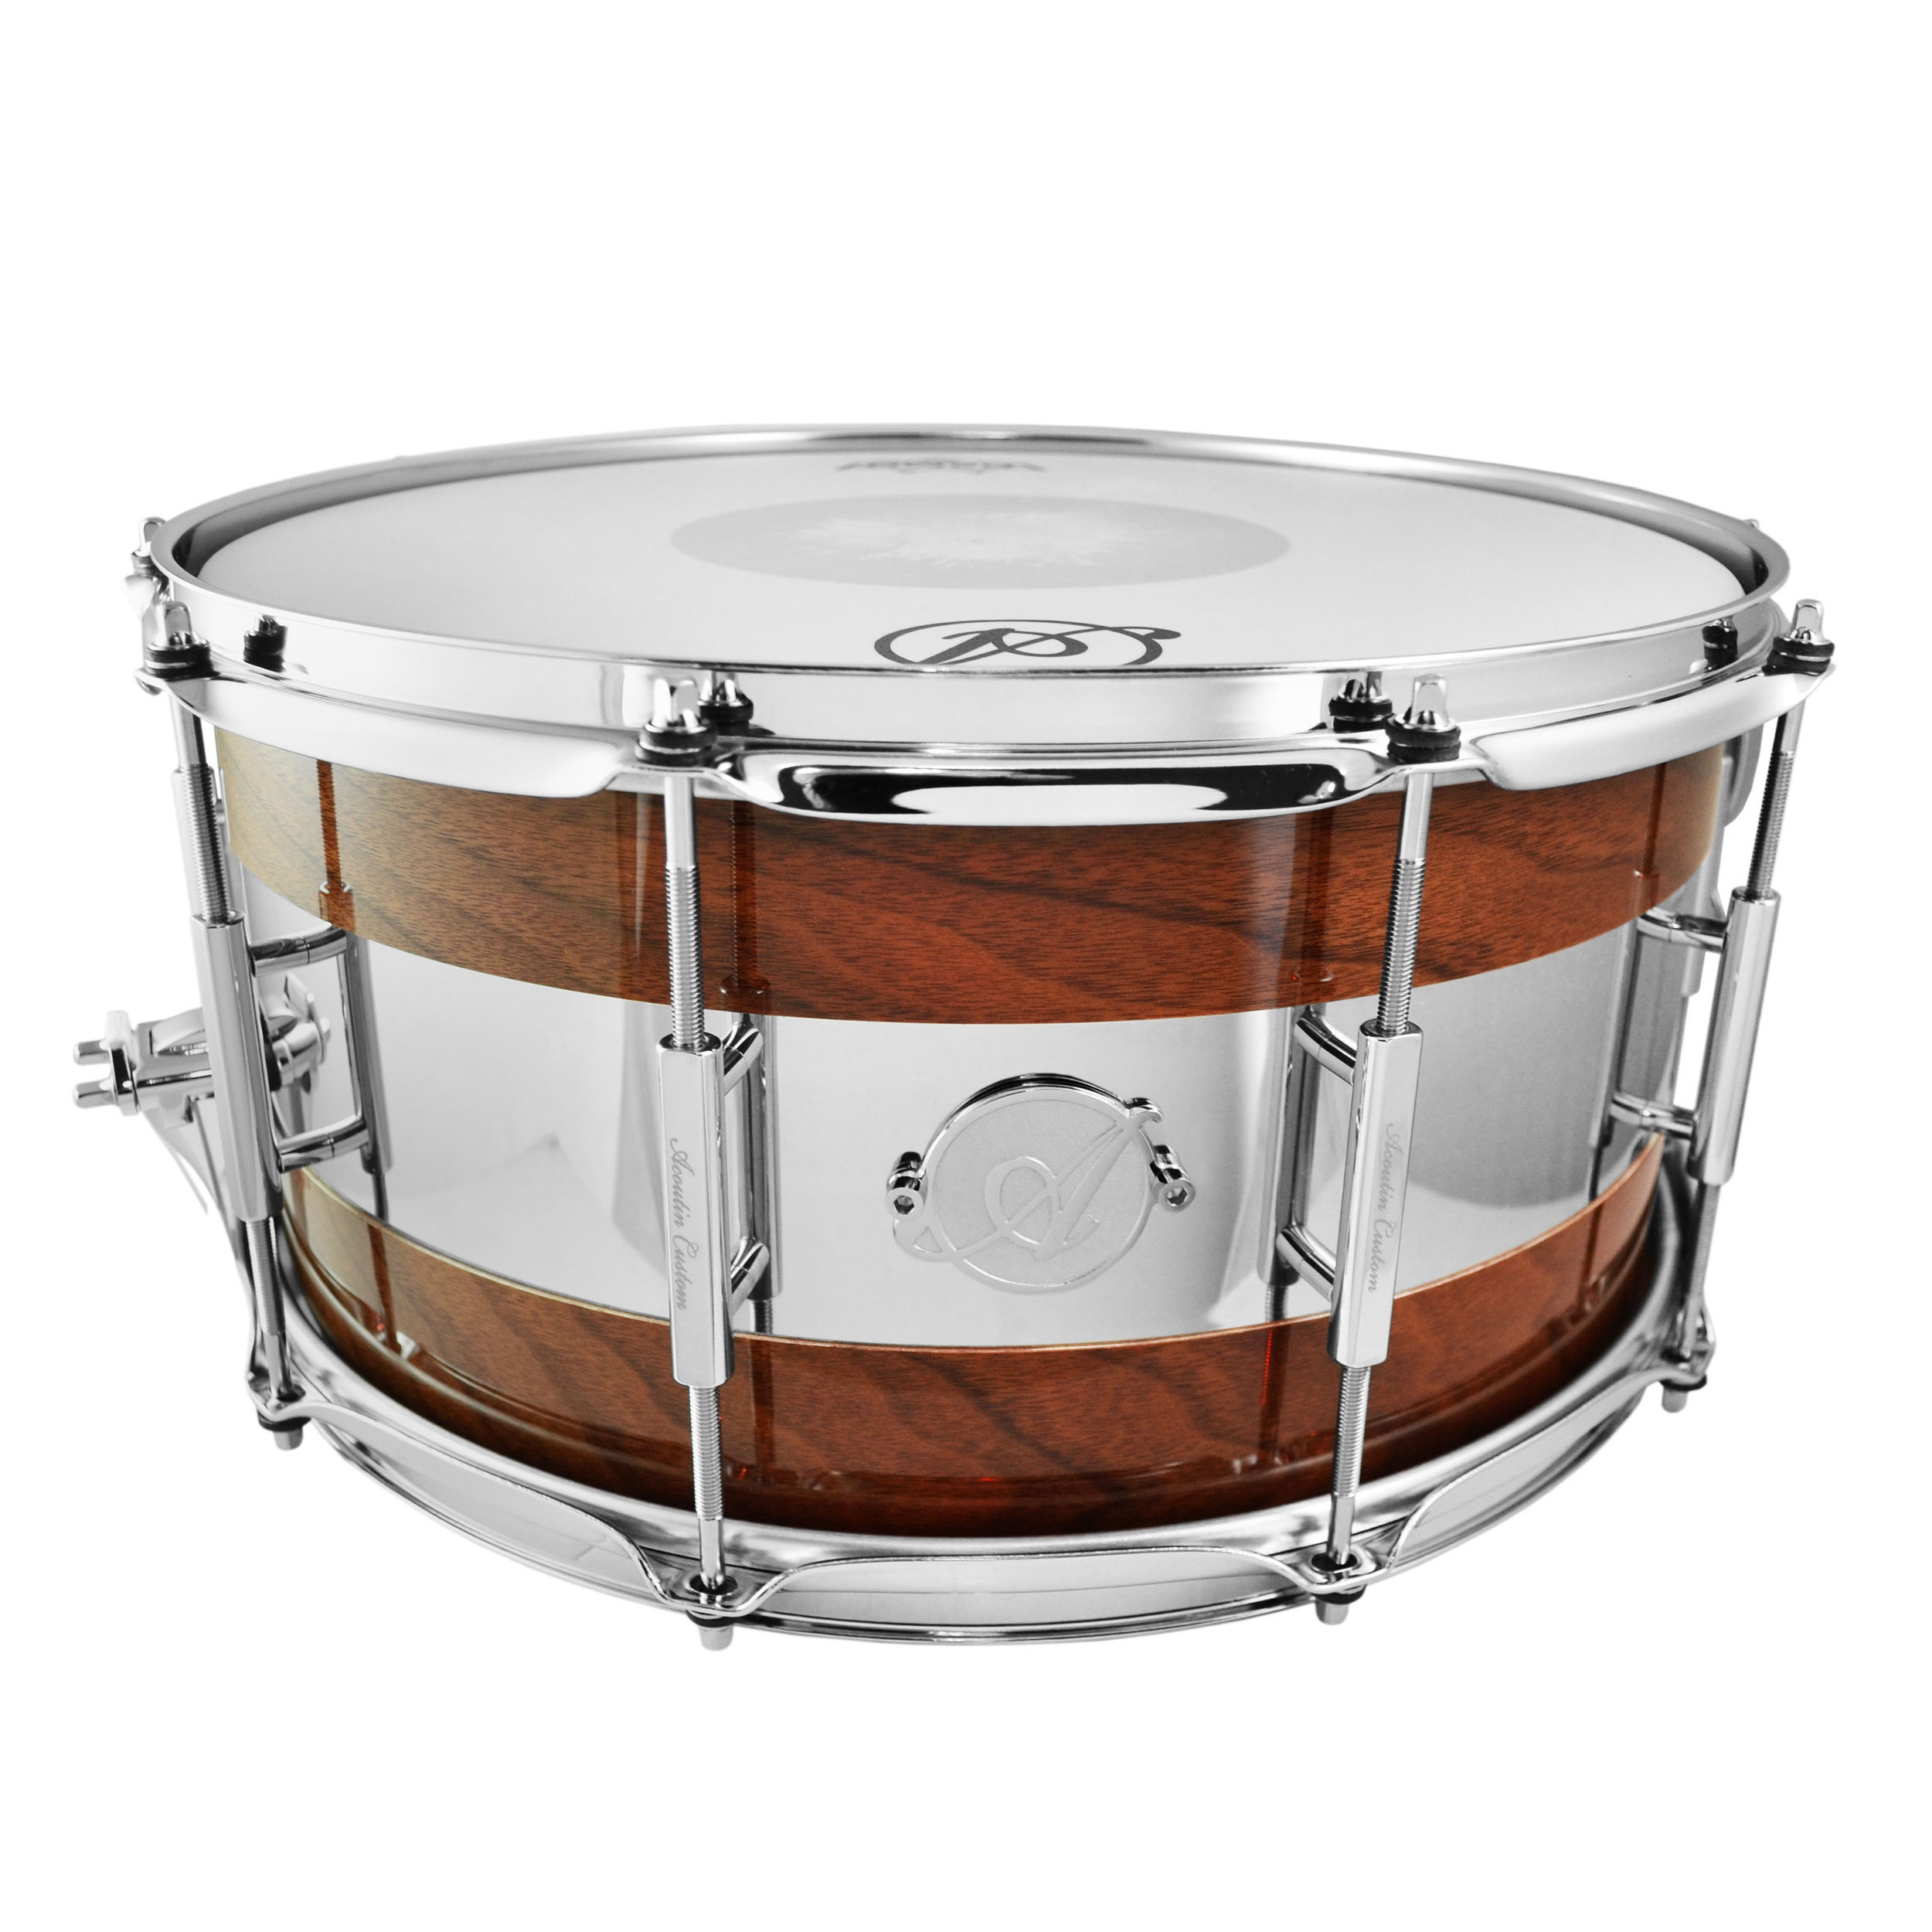 "Acoutin 6.5"" x 14"" Grey Ironbark & Brushed Stainless Steel Snare Drum in High Gloss"